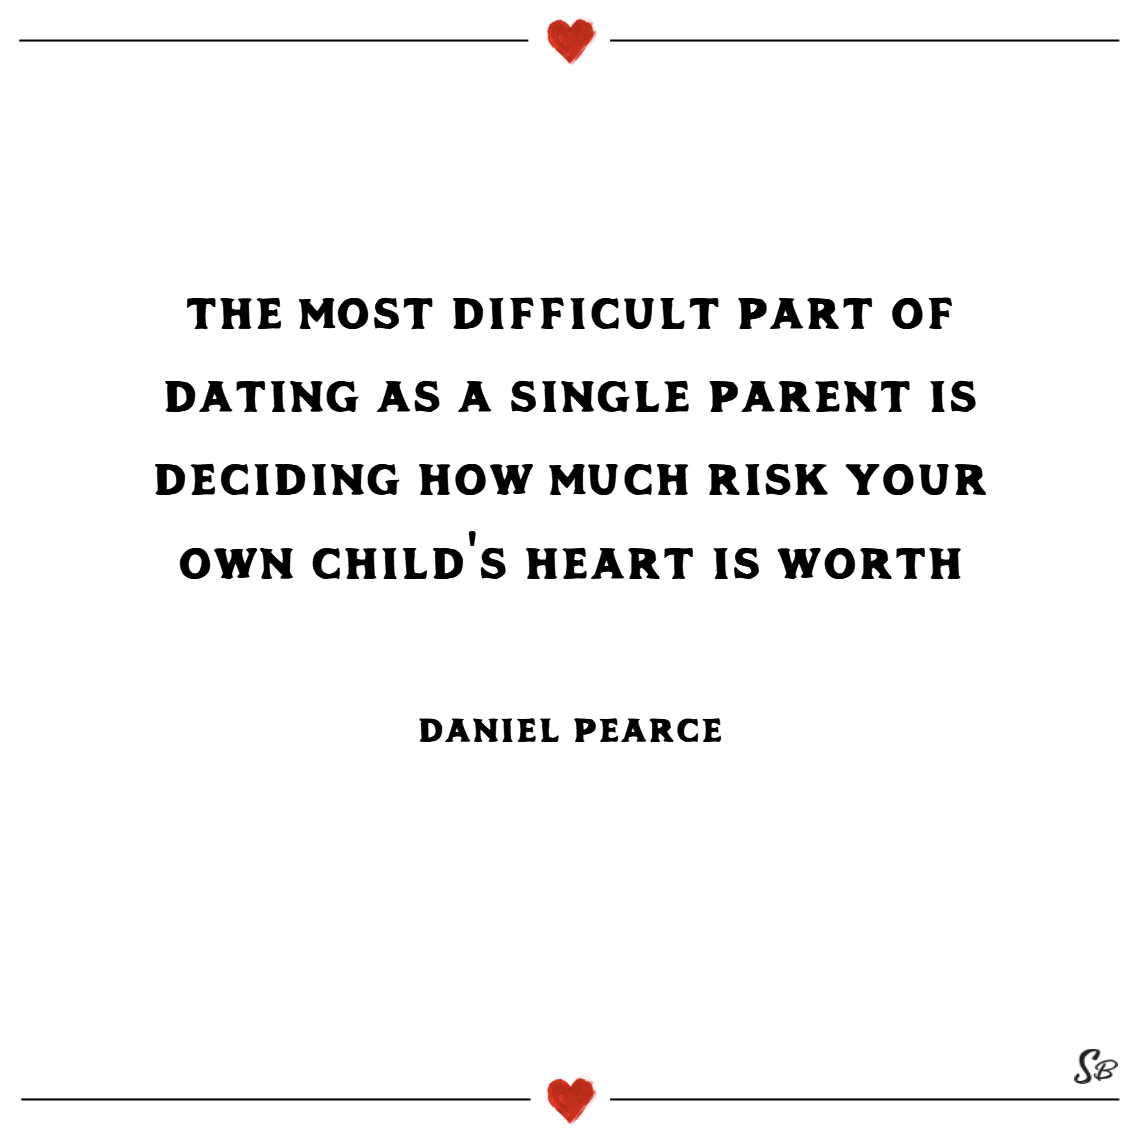 Single parent dating difficulties